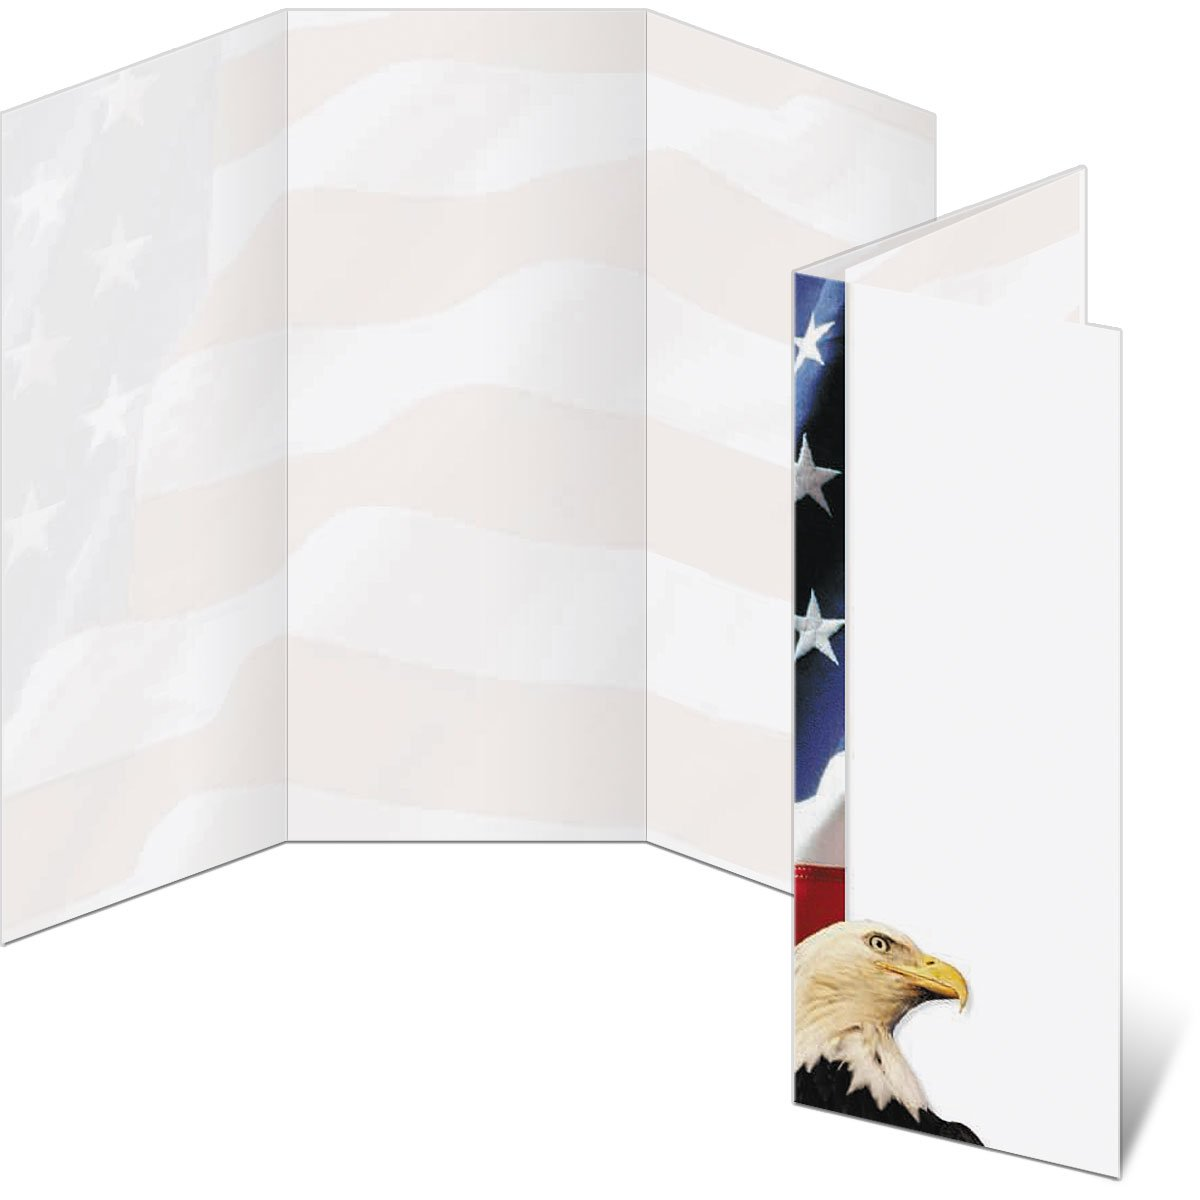 American Symbols 3-Panel Brochure, 8.5 x 11 Inches, 300 Count